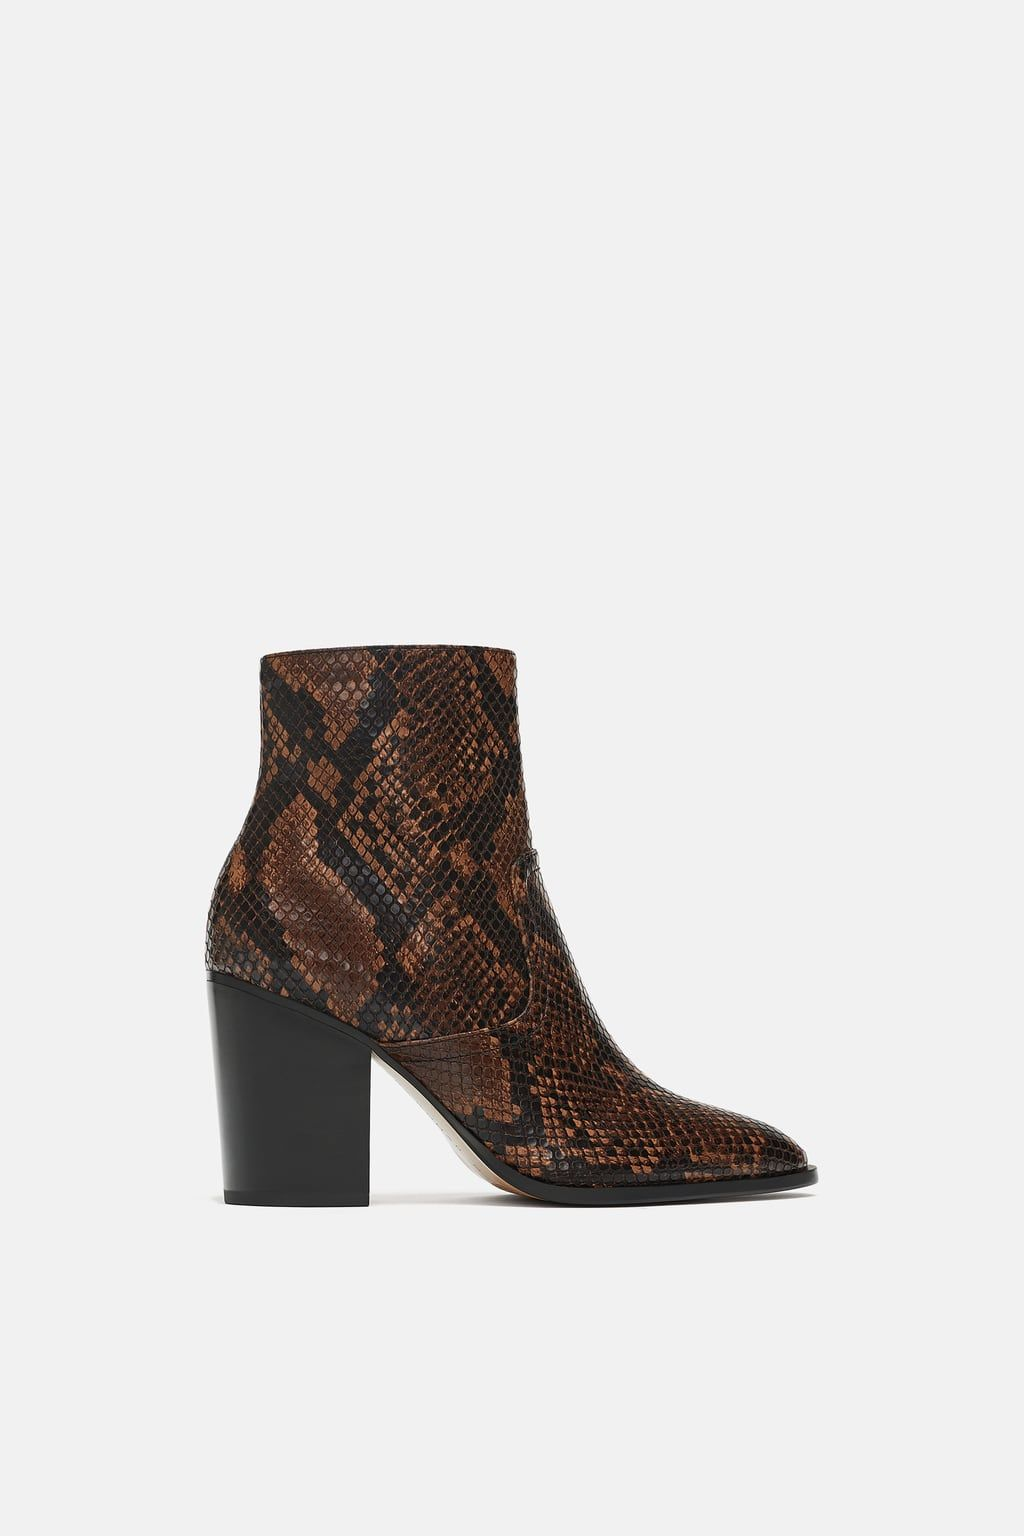 77c9a8e9 HEELED ANIMAL PRINT ANKLE BOOTS - Special prices-SHOES-WOMAN | ZARA United  States